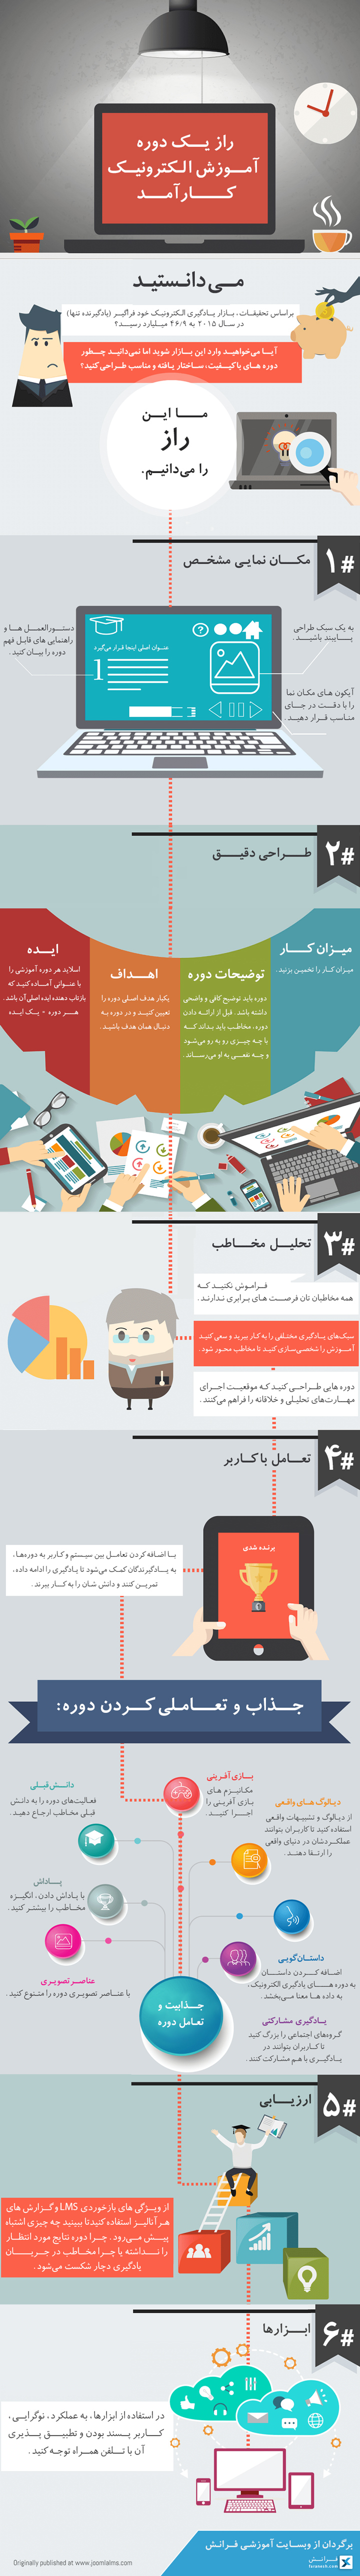 the-secret-of-an-effective-elearning-course-infographic-web